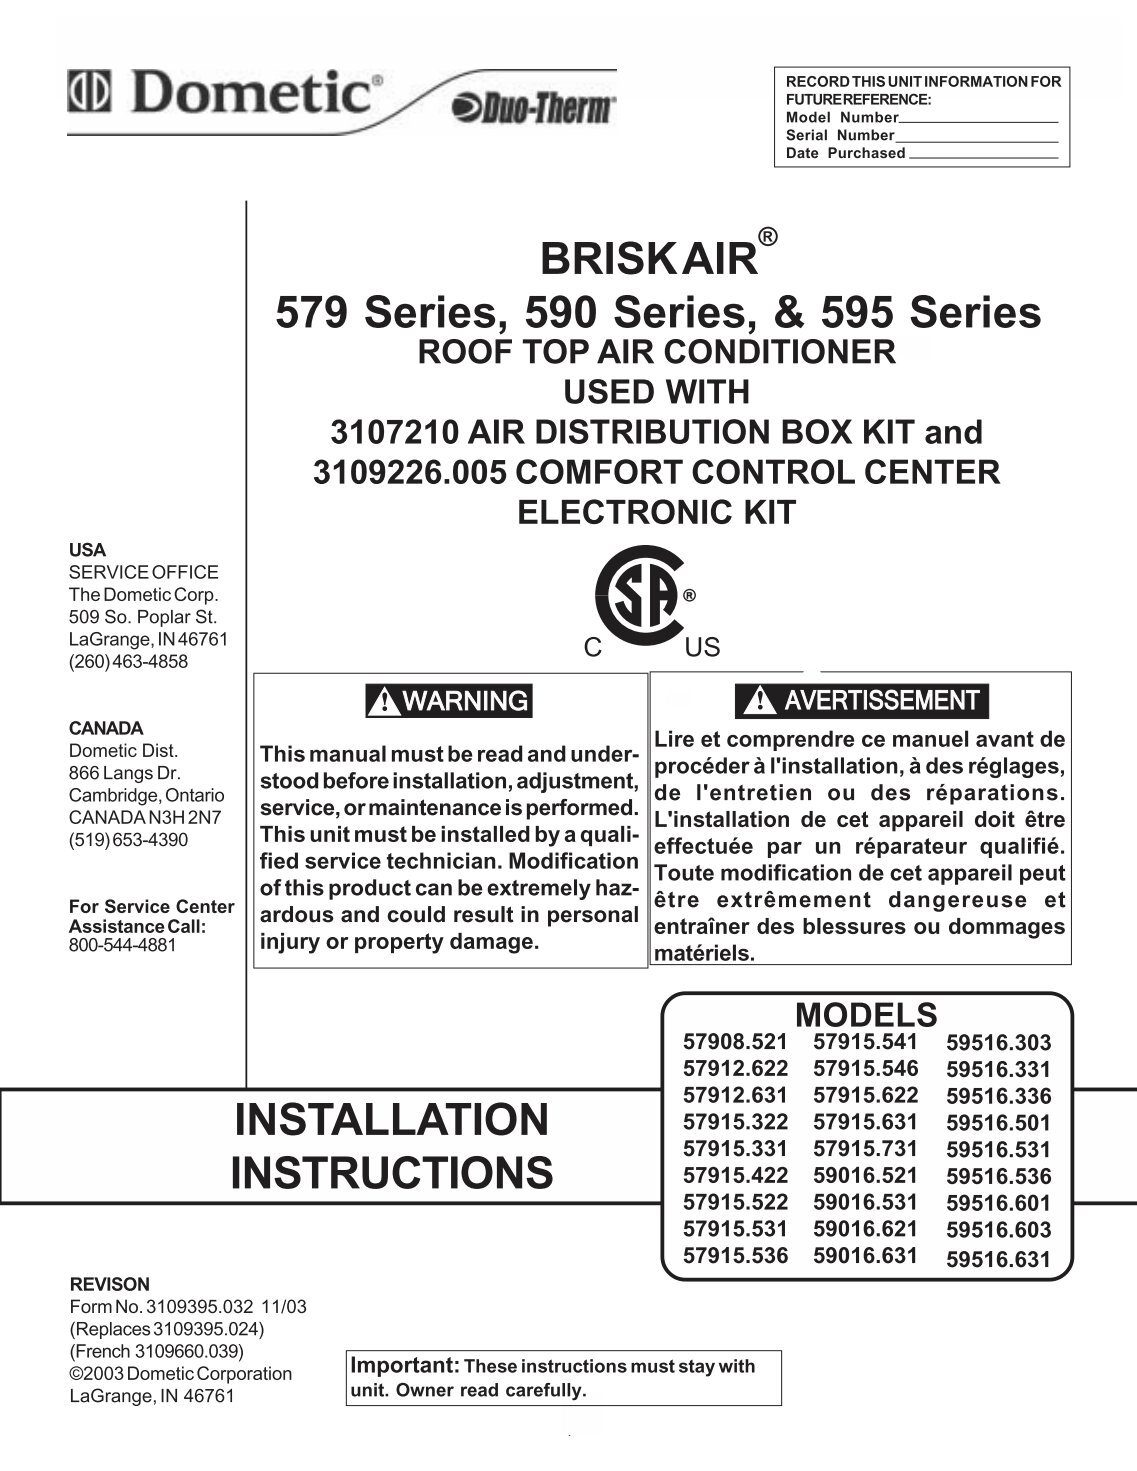 Dometic Thermostat Wiring Diagram 3106995032 - Wiring Diagram